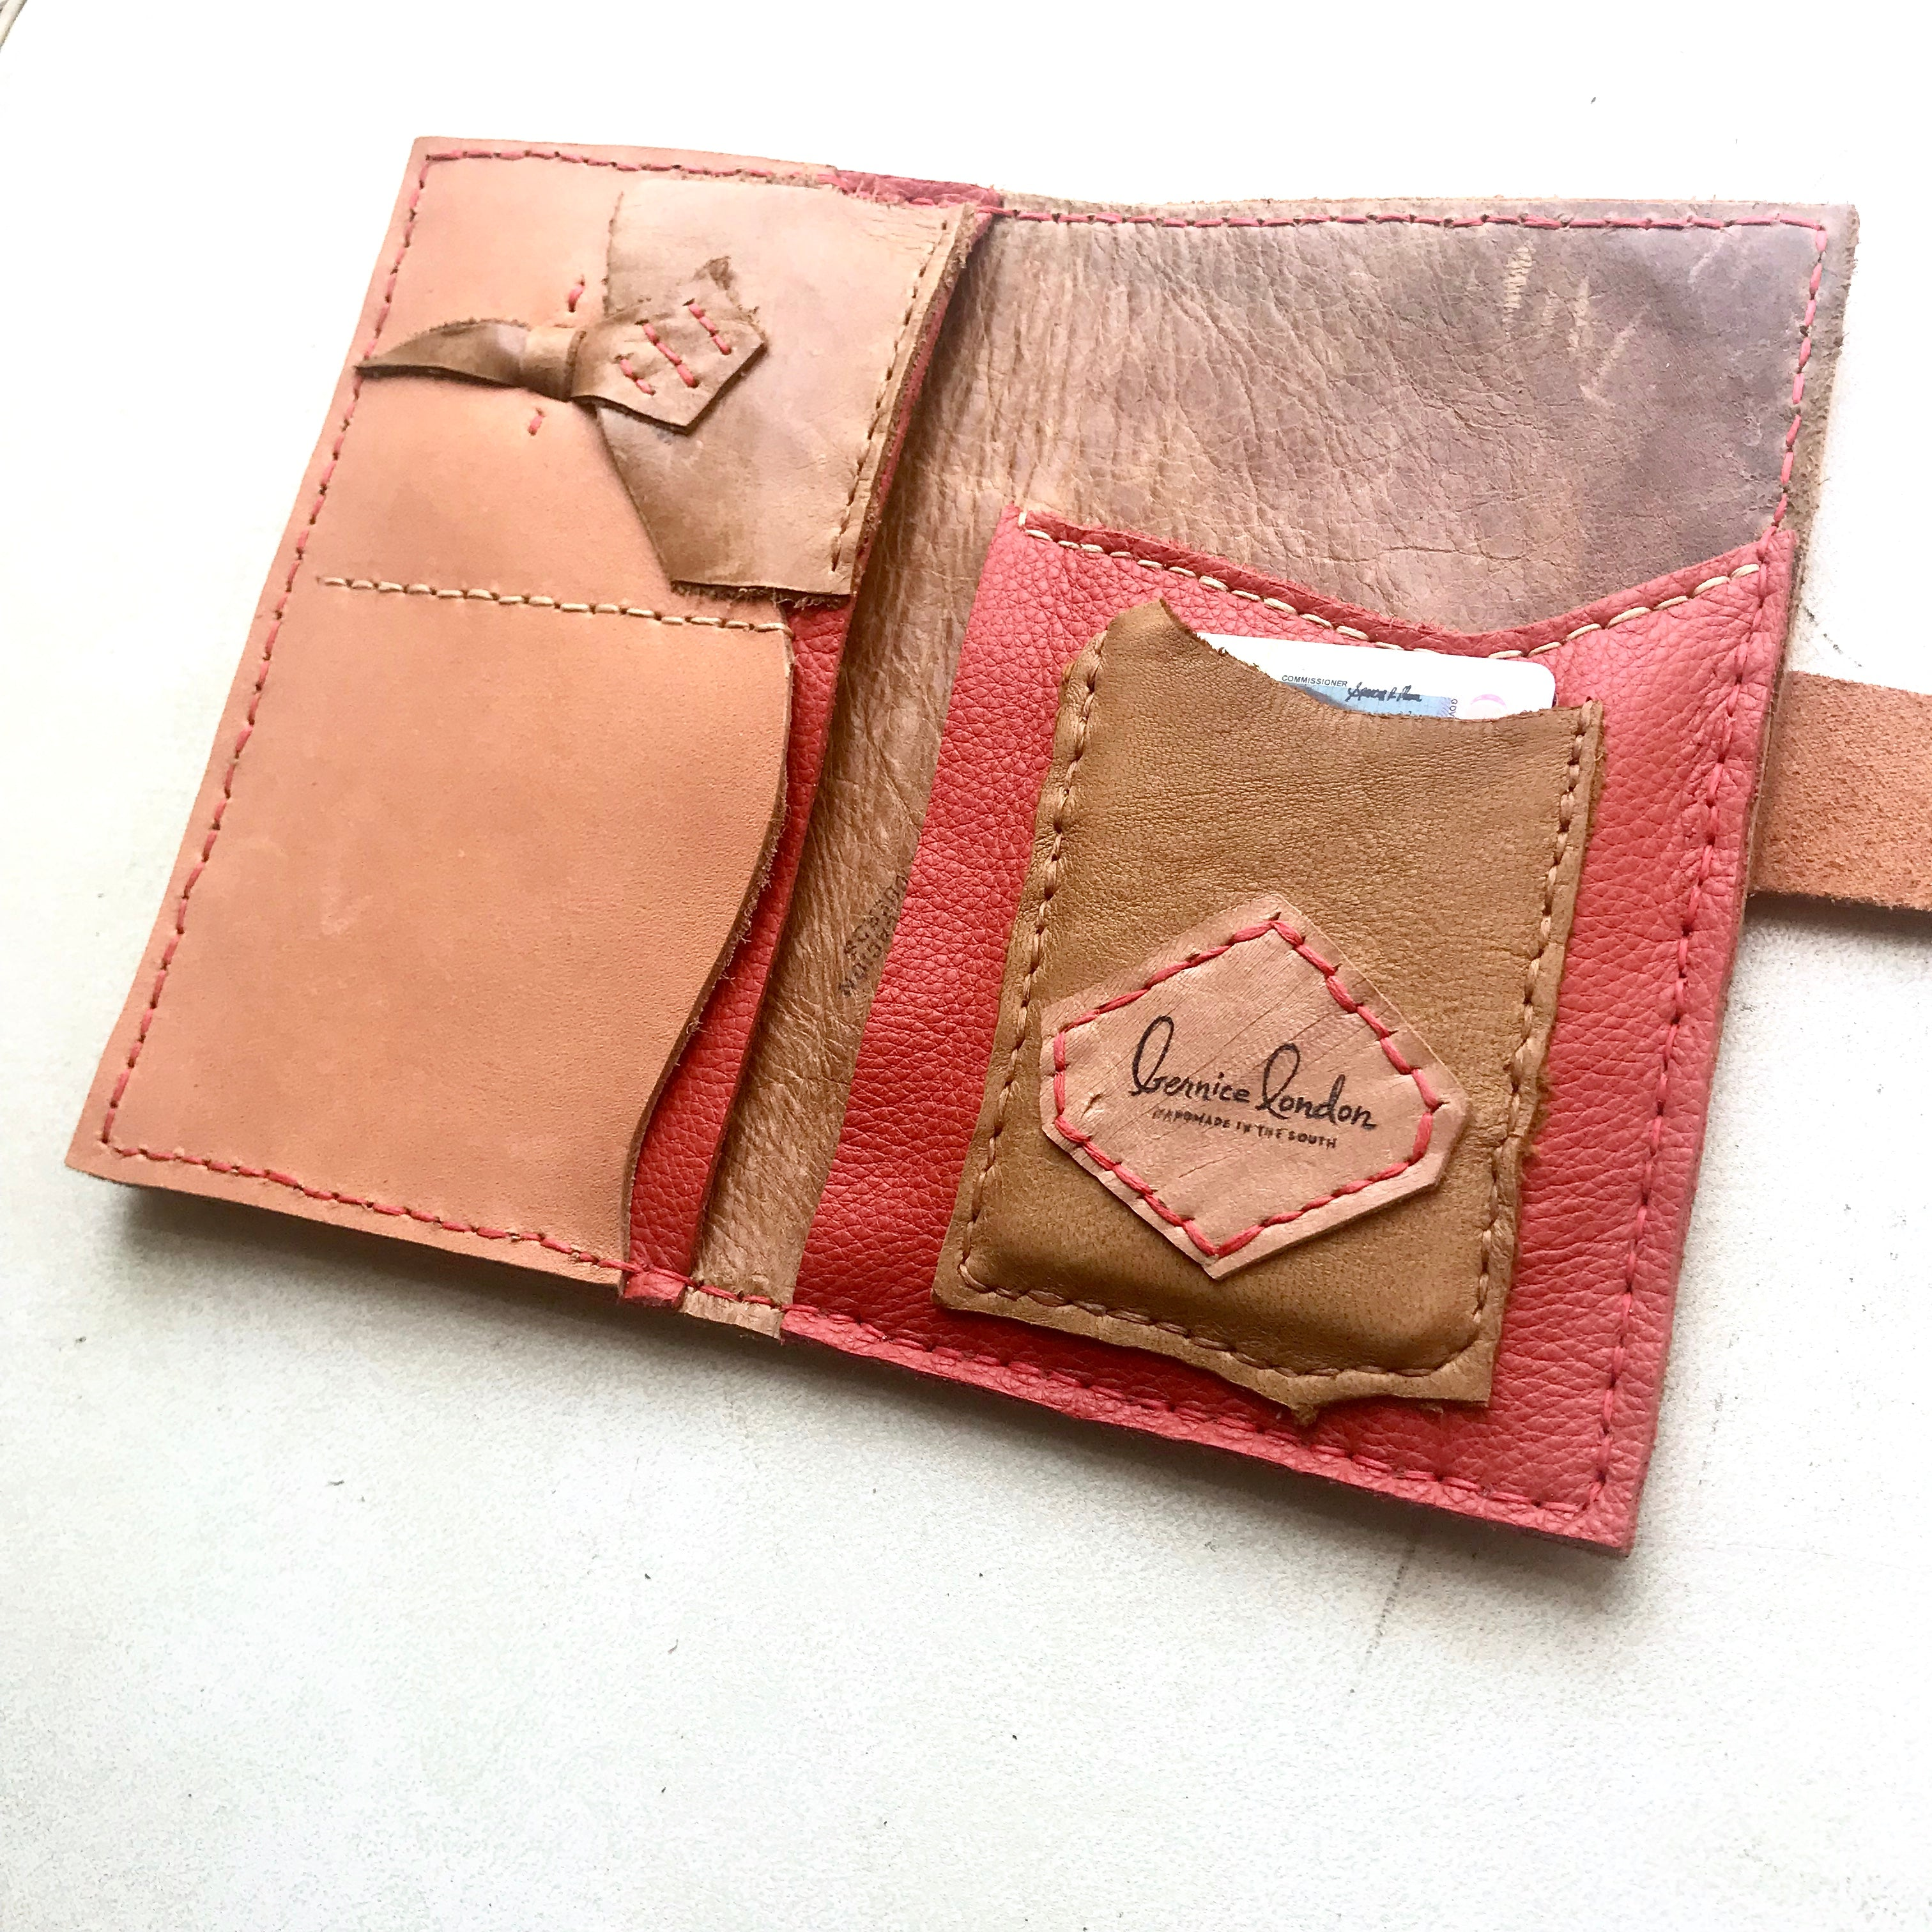 One of a kind leather wallet by Bernice London